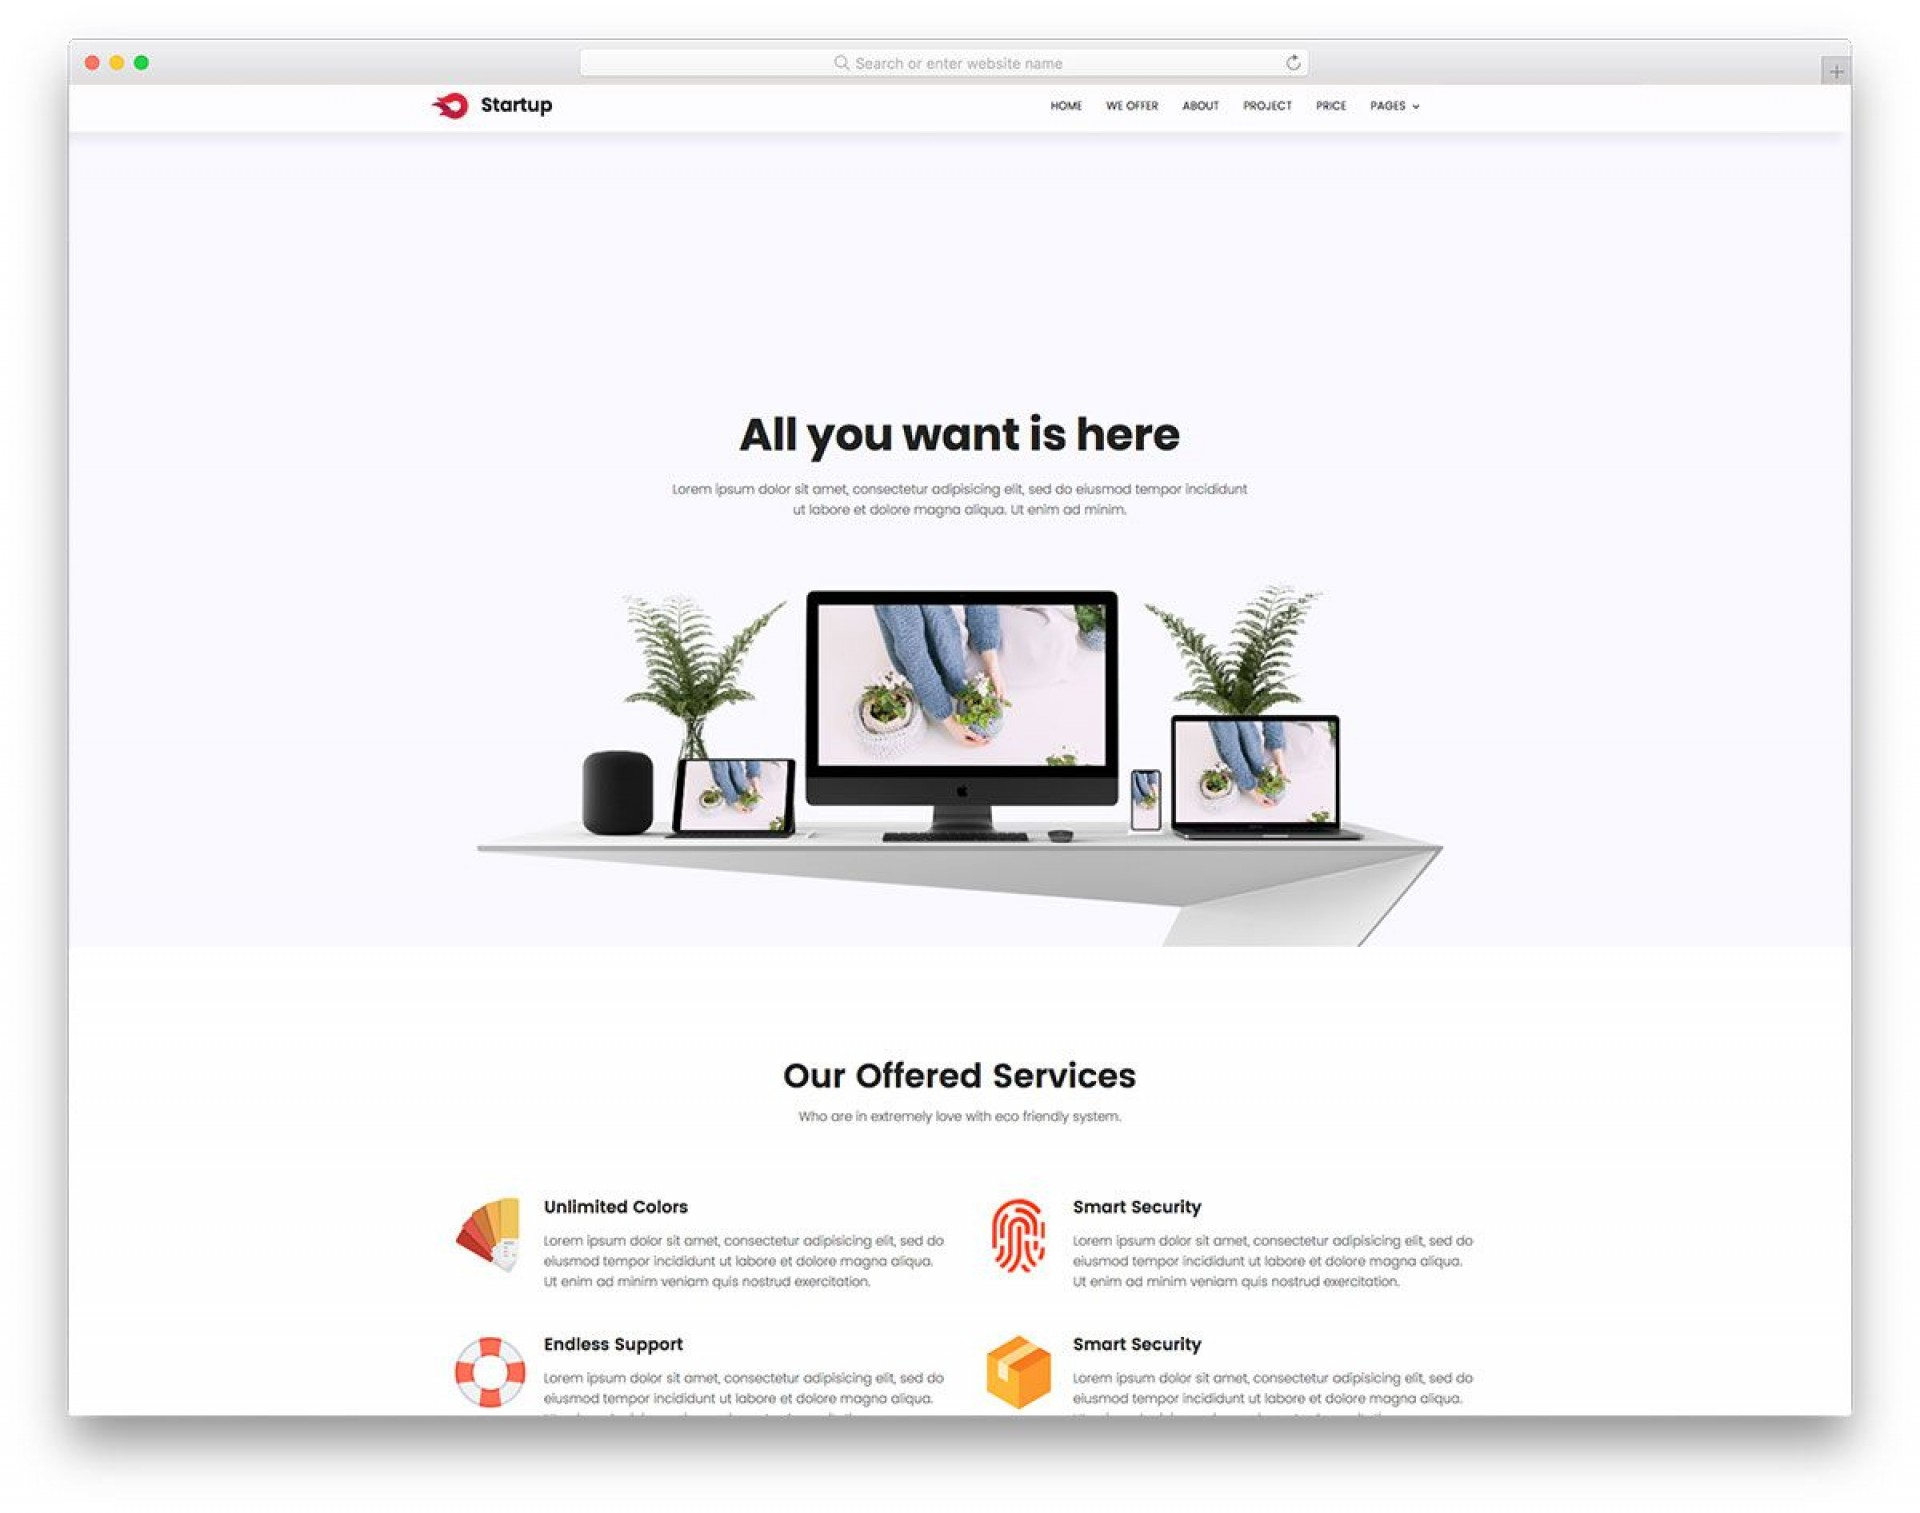 011 Outstanding Simple Web Page Template High Definition  Html Website Free Download In Design Using And Cs1920